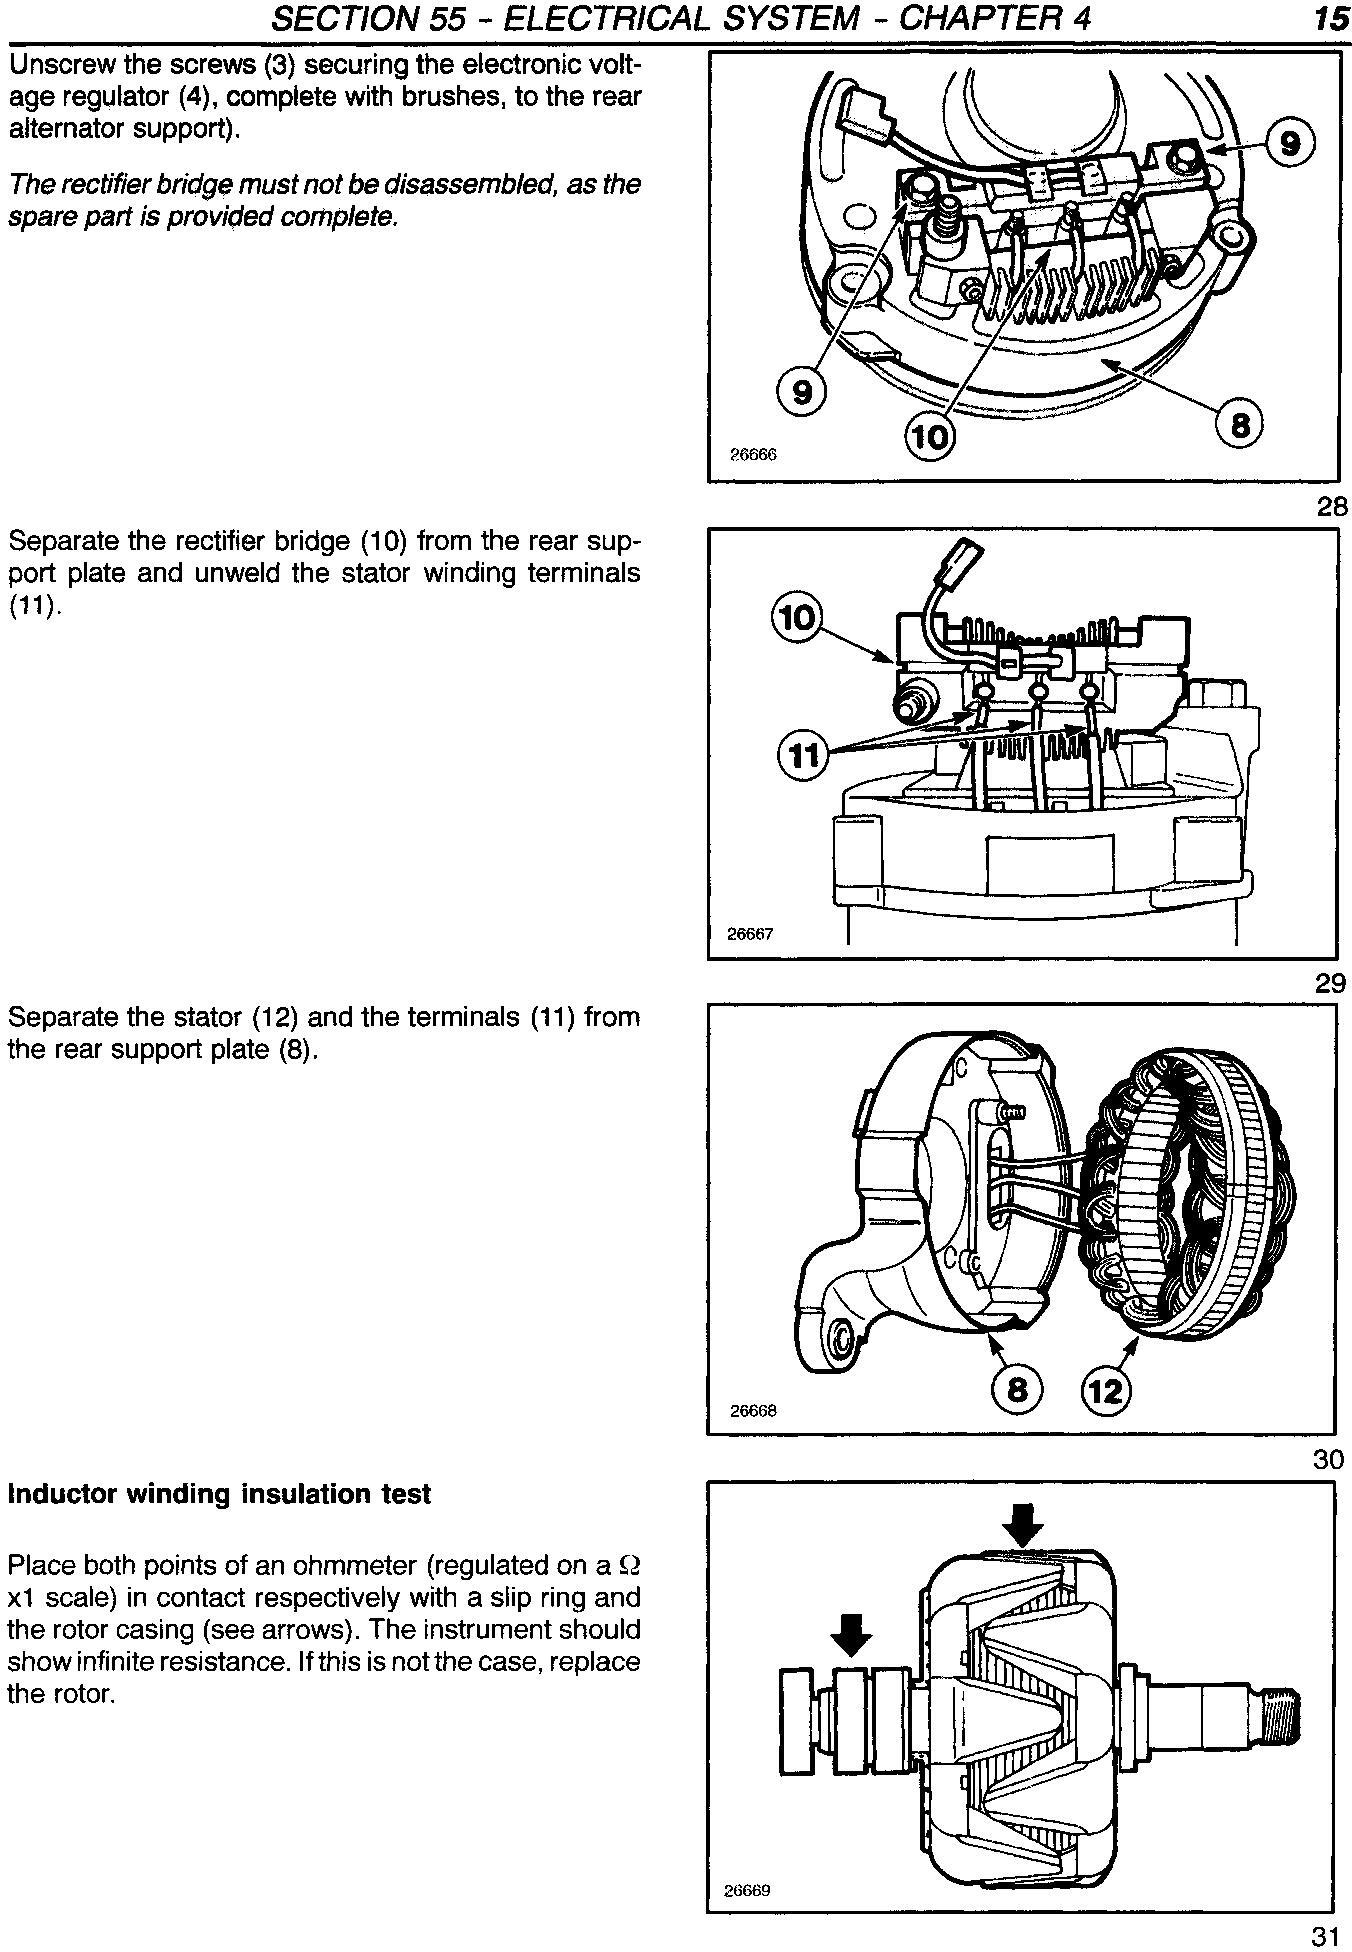 New Holland TK76, TK85, TK85M Crawler Tractor Complete Service Manual - 3